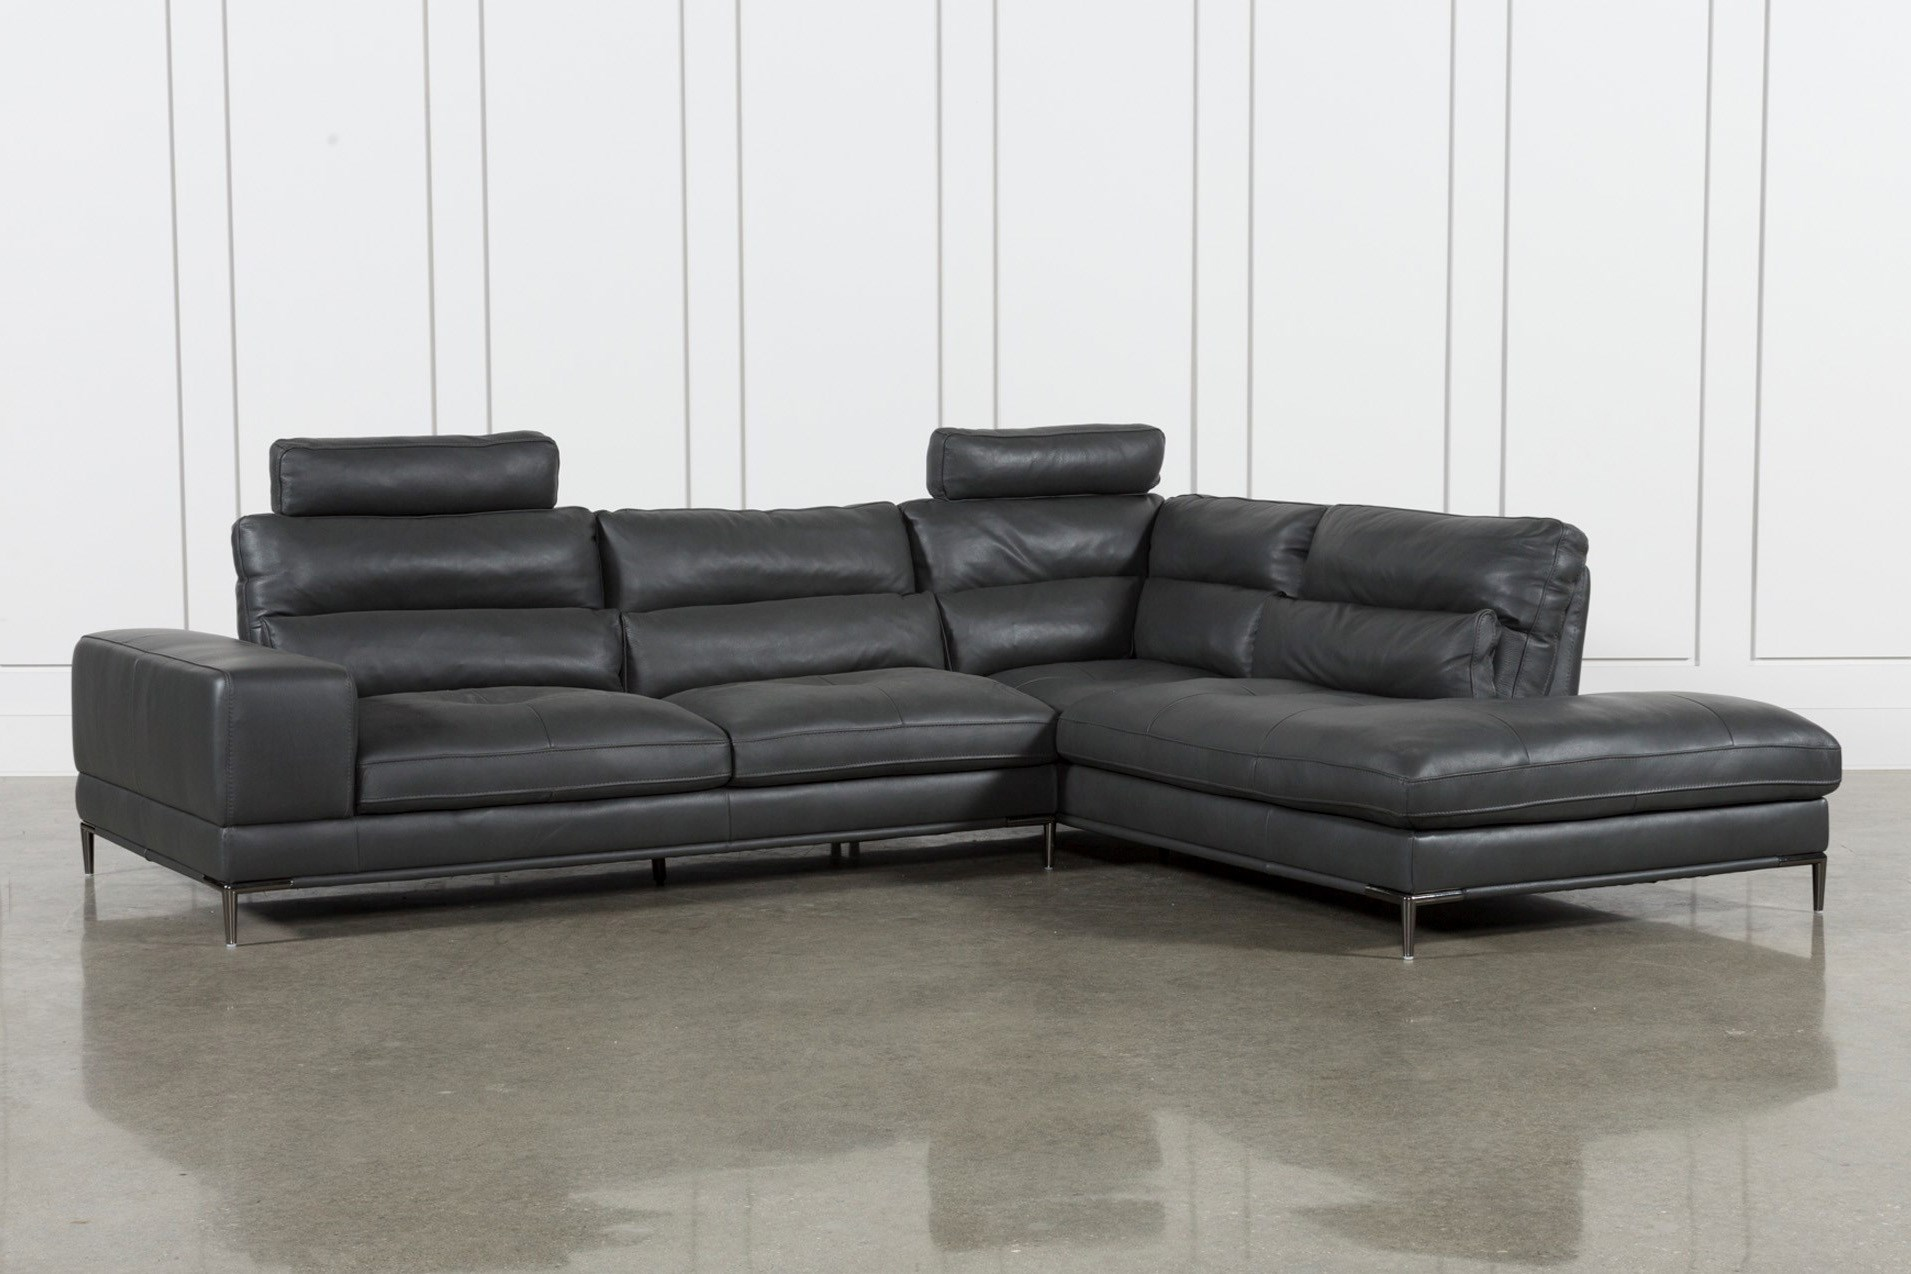 sectional sofa furniture comfy sofas sleeper seated home modern deep your reclining chaise decorating with grey ideas sof sectionals costco room emerald living fill leather for couches